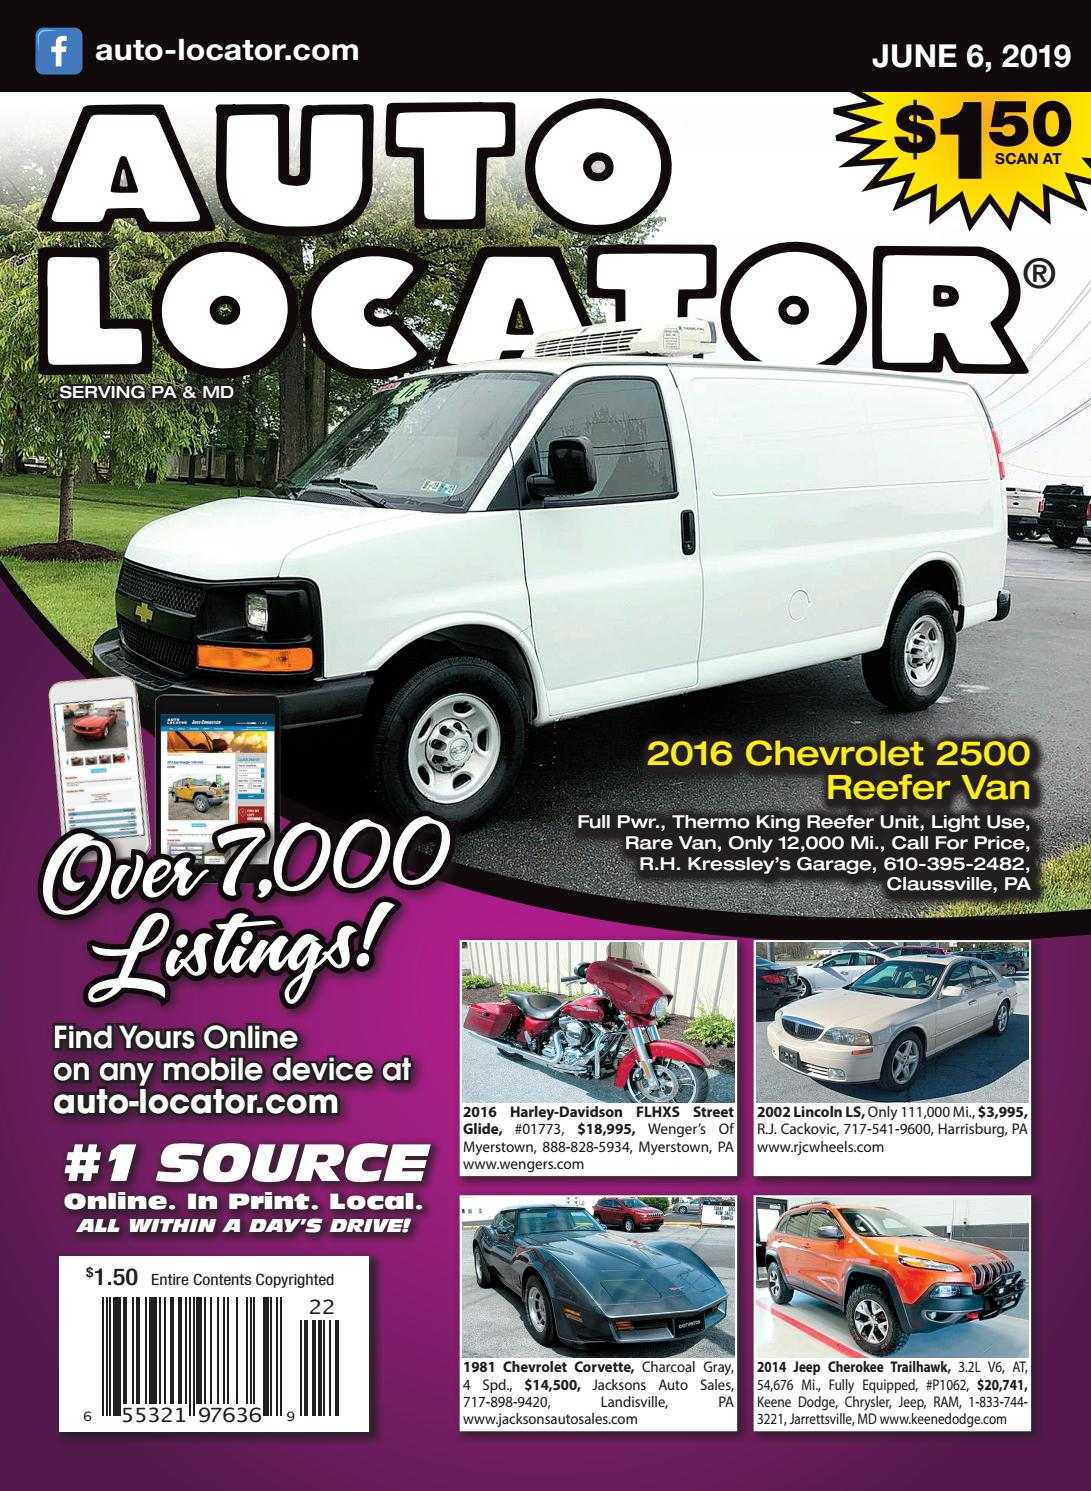 06-06-19 Auto Locator by Auto Locator and Auto Connection